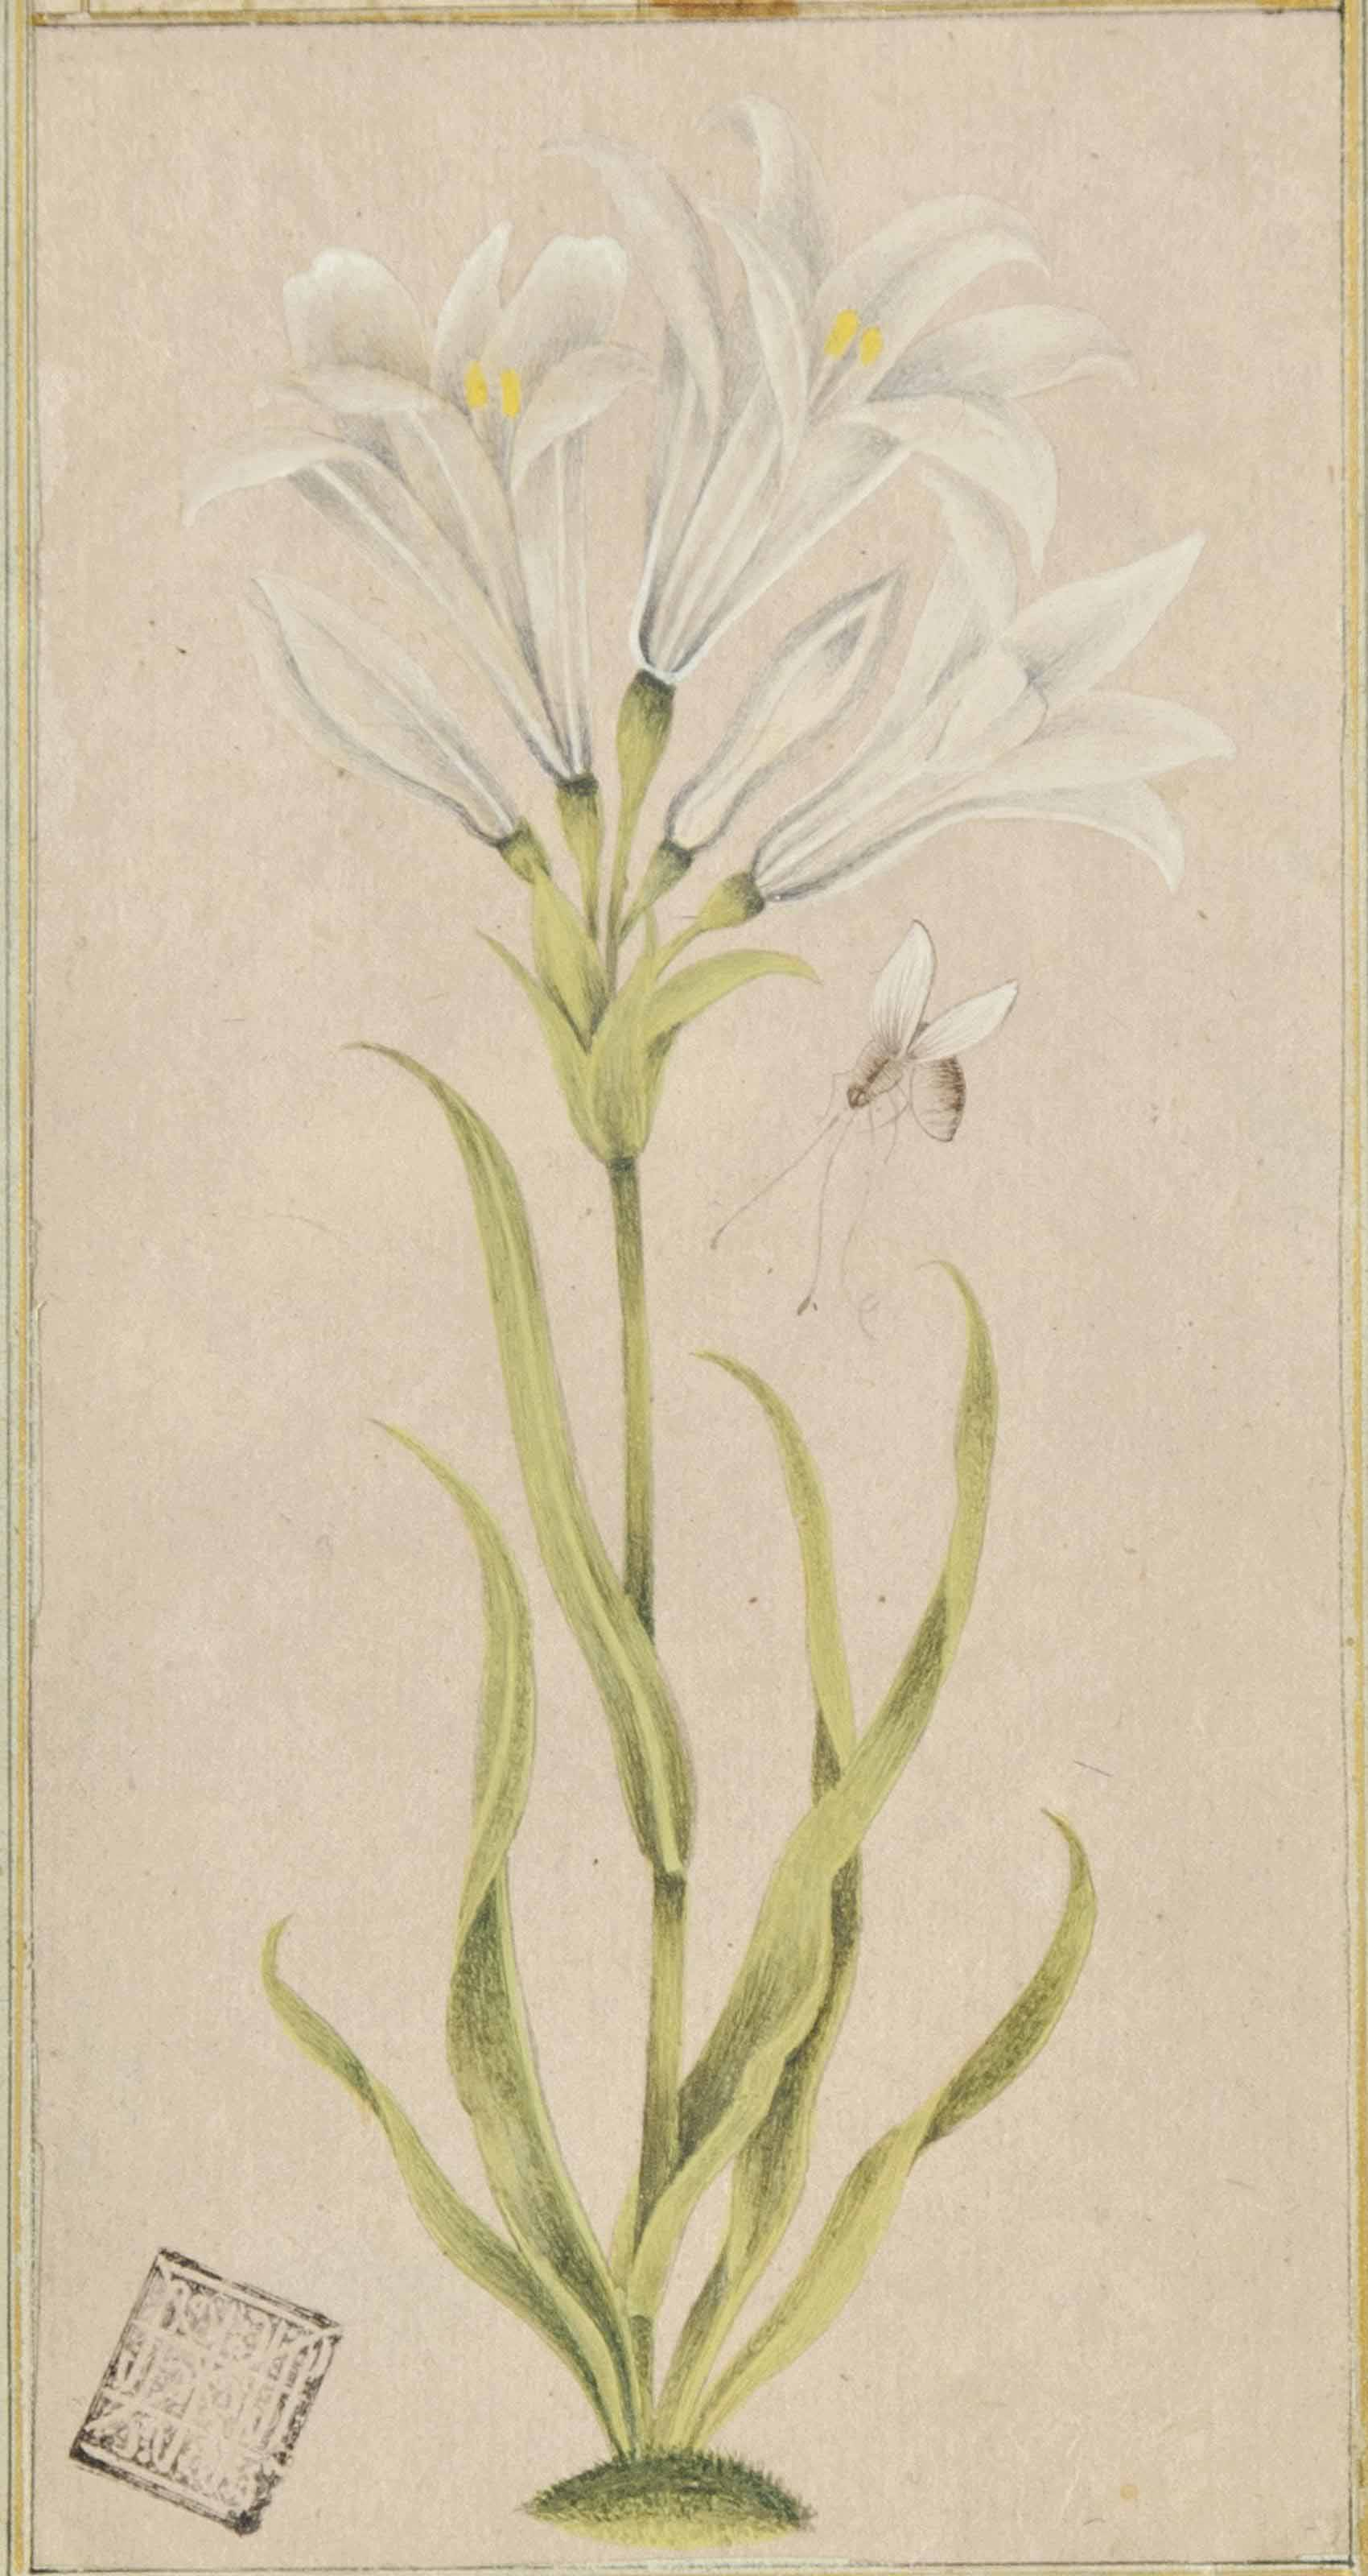 A BOTANICAL PAINTING OF A LILY AND A BEE